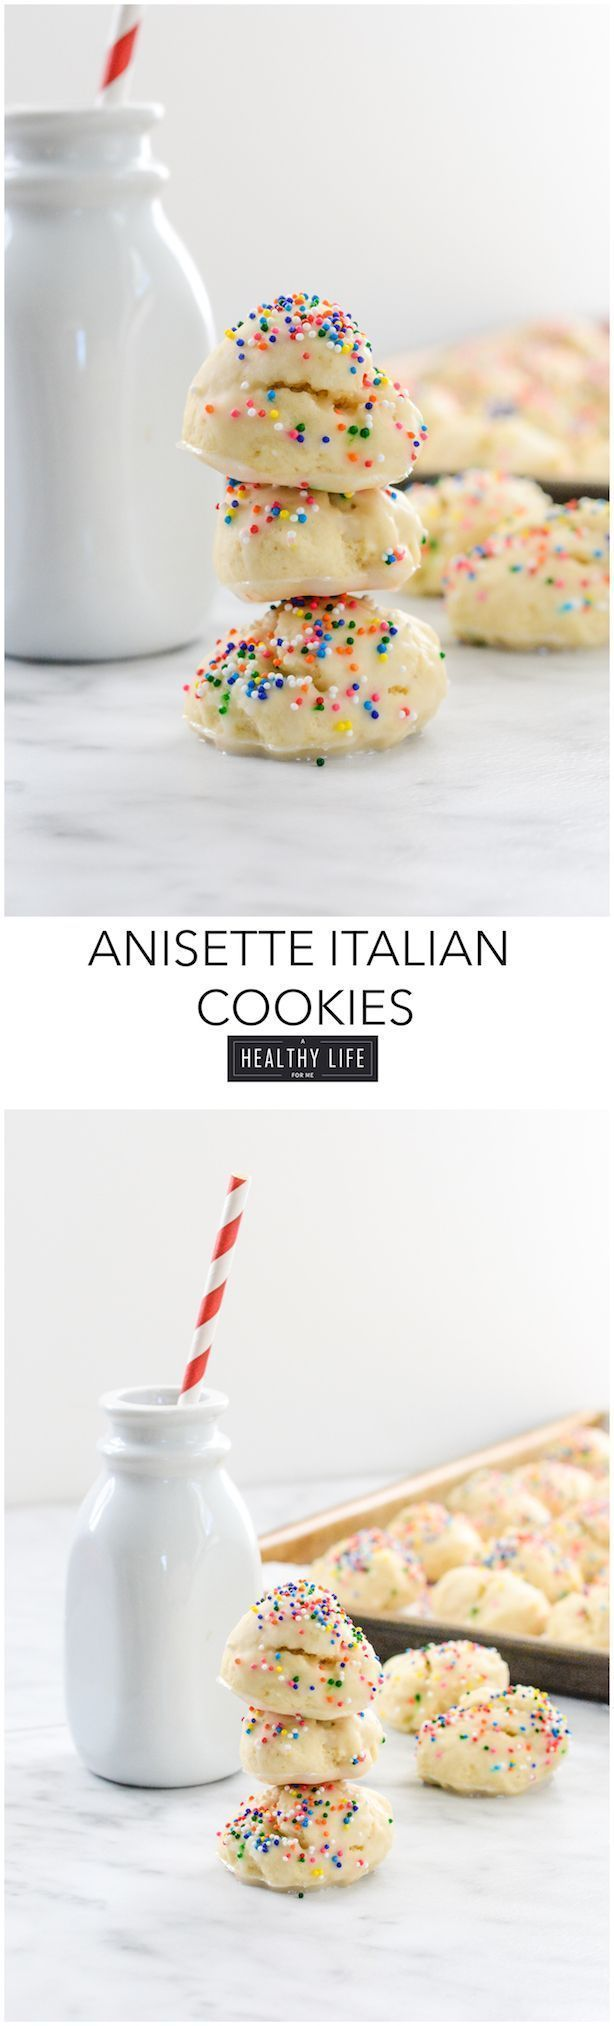 Anisette Italian Cookies are a traditioanl italian cake like cookie that is covered with a shiny glaze and colorful sprinkles.  Quick and easy to make with just a few ingedients one being anise extract that gives these cookies their amazing flavor. - A He